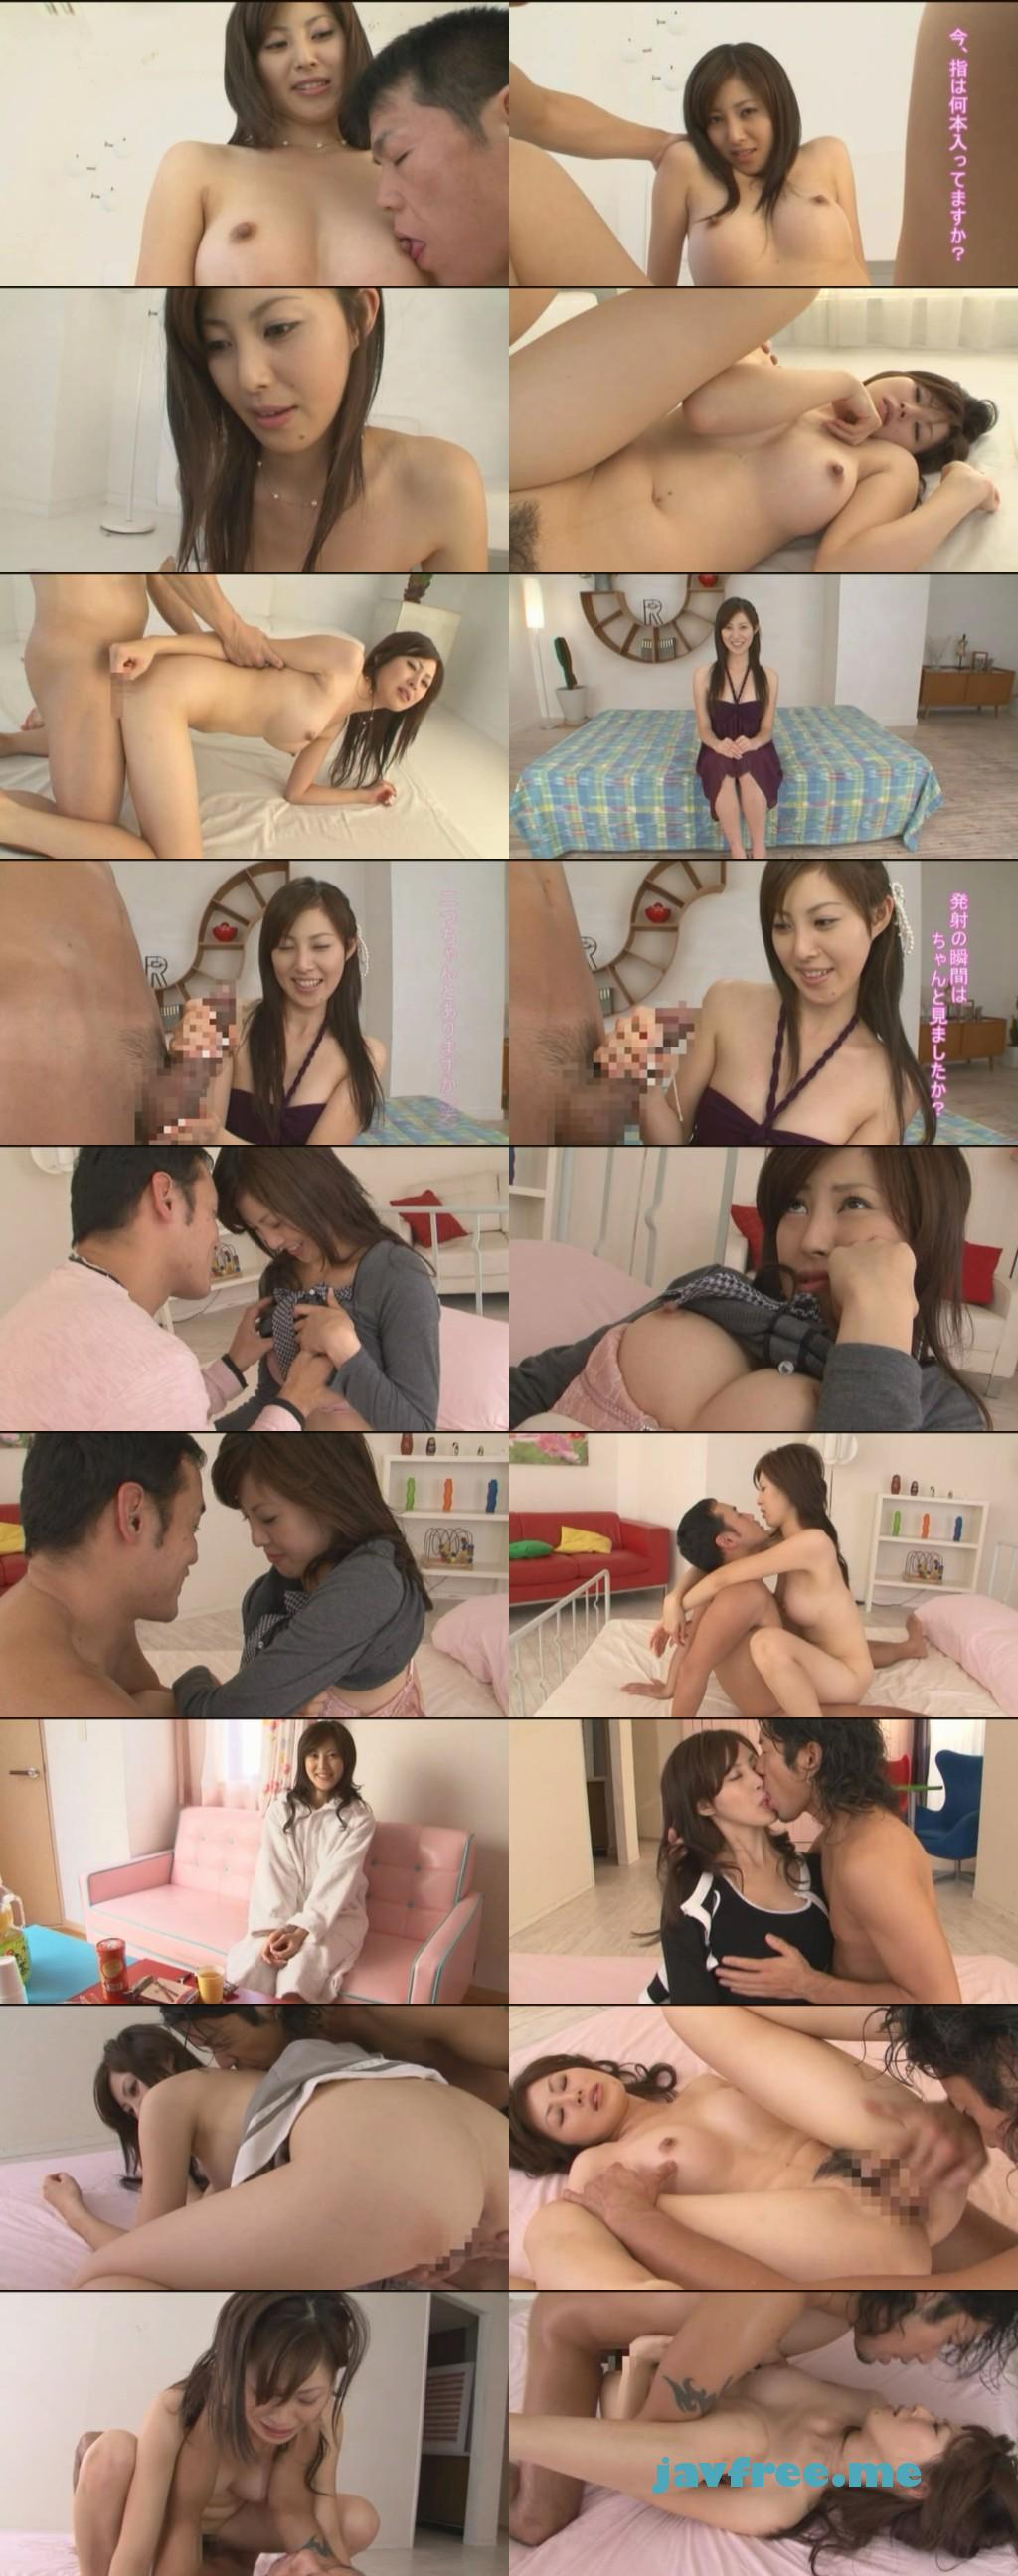 [DV-1007] 新人×アリスJAPAN 桜リエ - image DV-1007 on https://javfree.me